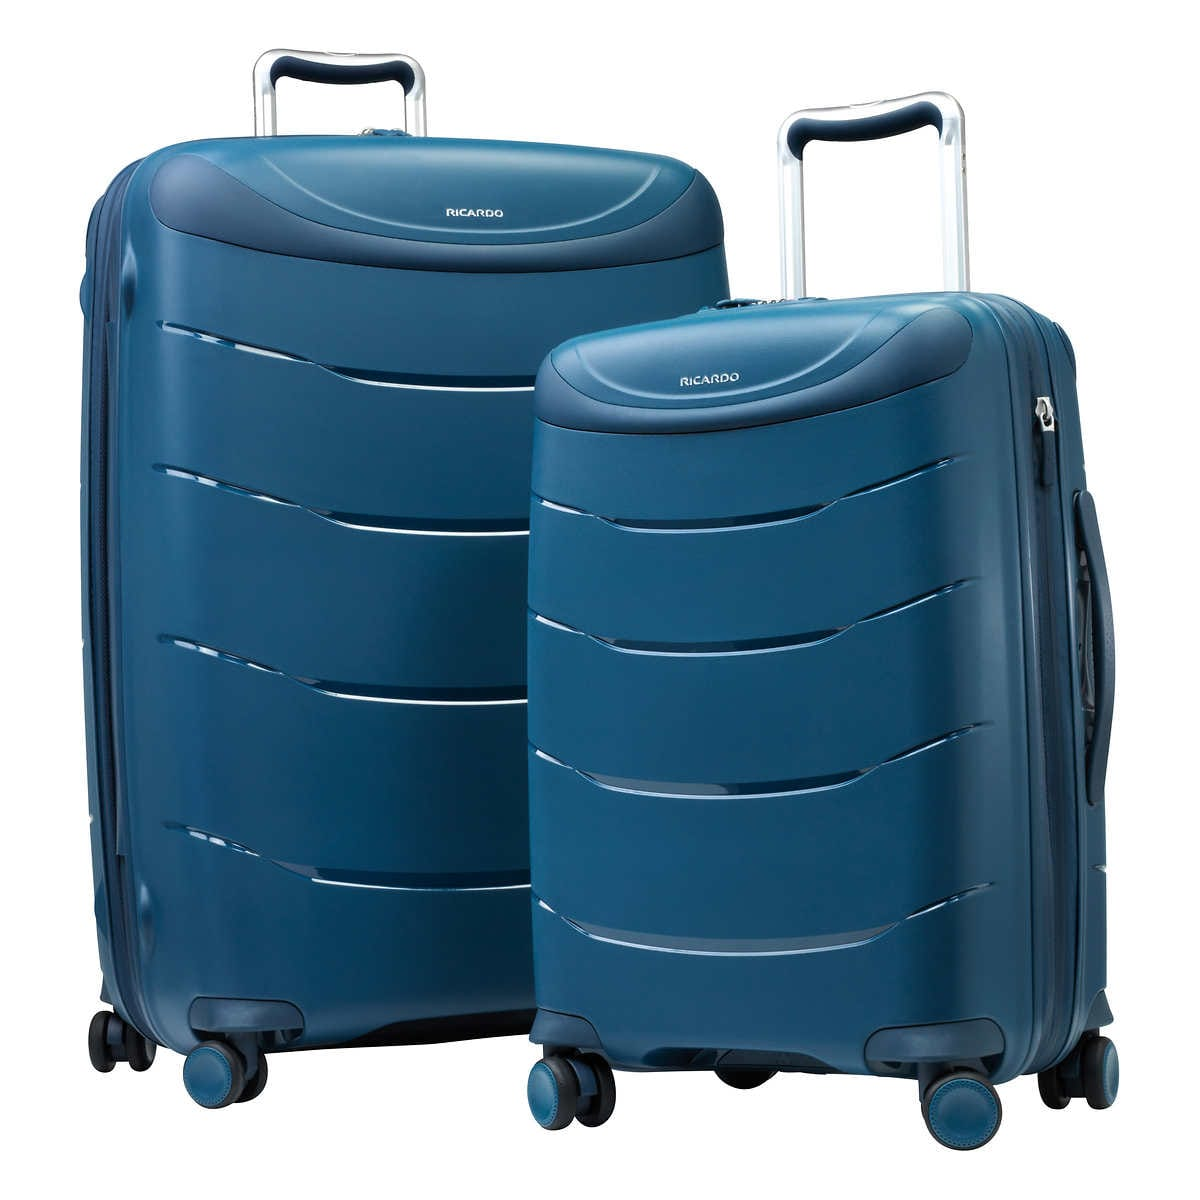 c238736c7 Ricardo Beverly Hills Contour 2-piece Hardside Luggage Set (28